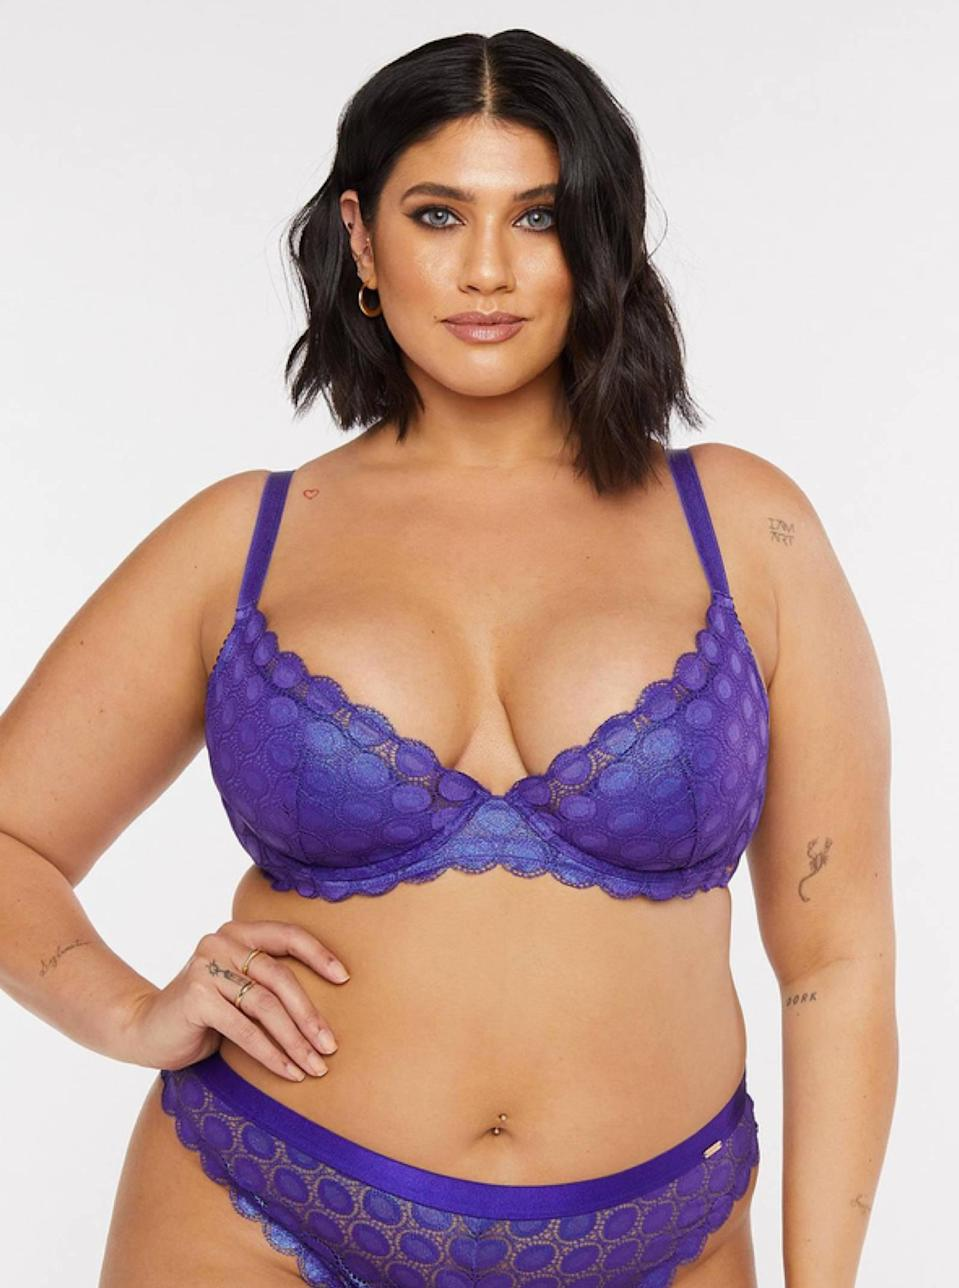 "<p><strong>Key selling points:</strong> Everything from the gorgeous violet-blue hue, to the retro-inspired design, to the light yet liftable padding, makes this bra (which goes up to a 46 DDD) a true (blue) winner.</p> <p><strong>What customers say:</strong> ""The color: stunning. The style: adorable. The design: amazing. I am a big fan of bras that aren't boring and make a statement. This is one of the ones that is slowly creeping my way up to my favorites. The color is flattering and bold and makes a statement. I love the way that it fits, and the support is excellent. I am going to buy this in the other colors available, and I recommend that you do as well!"" — <em>Jillian, reviewer on</em> <a href=""https://cna.st/affiliate-link/VMYJVKETKc2CMG1BZb1Kysvyks1oMK5bZ6FLwKzTV6zZD2XMDdhobBV4bPWQzsvKoCD4E7yQKERRcFHk1kERzeKnH8hxMeaGZf3Gsbtu7f2dwHTdHHoMKhEzaLAtoXmA8xEdVRytwWZrabMdANAaYLKq8NpkczN4Hmzdc4QGq7cTQ3b4aLzM4APmTtsuH8F2isMTZ1CtpEM75c?cid=606b544b5ffe9b4fe6a68020"" rel=""nofollow noopener"" target=""_blank"" data-ylk=""slk:Savage x Fenty"" class=""link rapid-noclick-resp""><em>Savage x Fenty</em></a></p> $29, Savage x Fenty. <a href=""https://www.savagex.com/shop/mod-on-the-moon-fashion-bra-ba2145775-1345-11328772?"" rel=""nofollow noopener"" target=""_blank"" data-ylk=""slk:Get it now!"" class=""link rapid-noclick-resp"">Get it now!</a>"